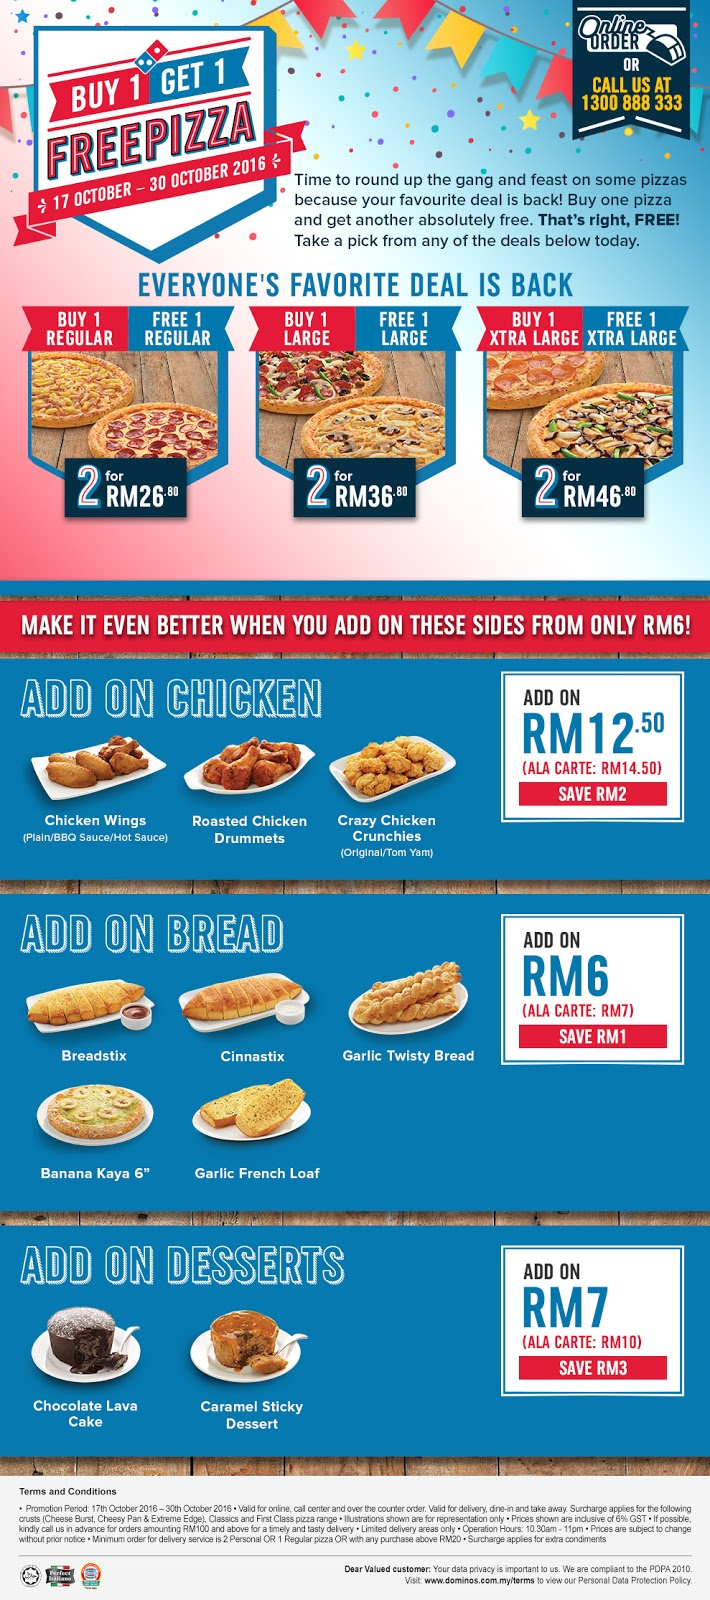 how to order domino online malaysia